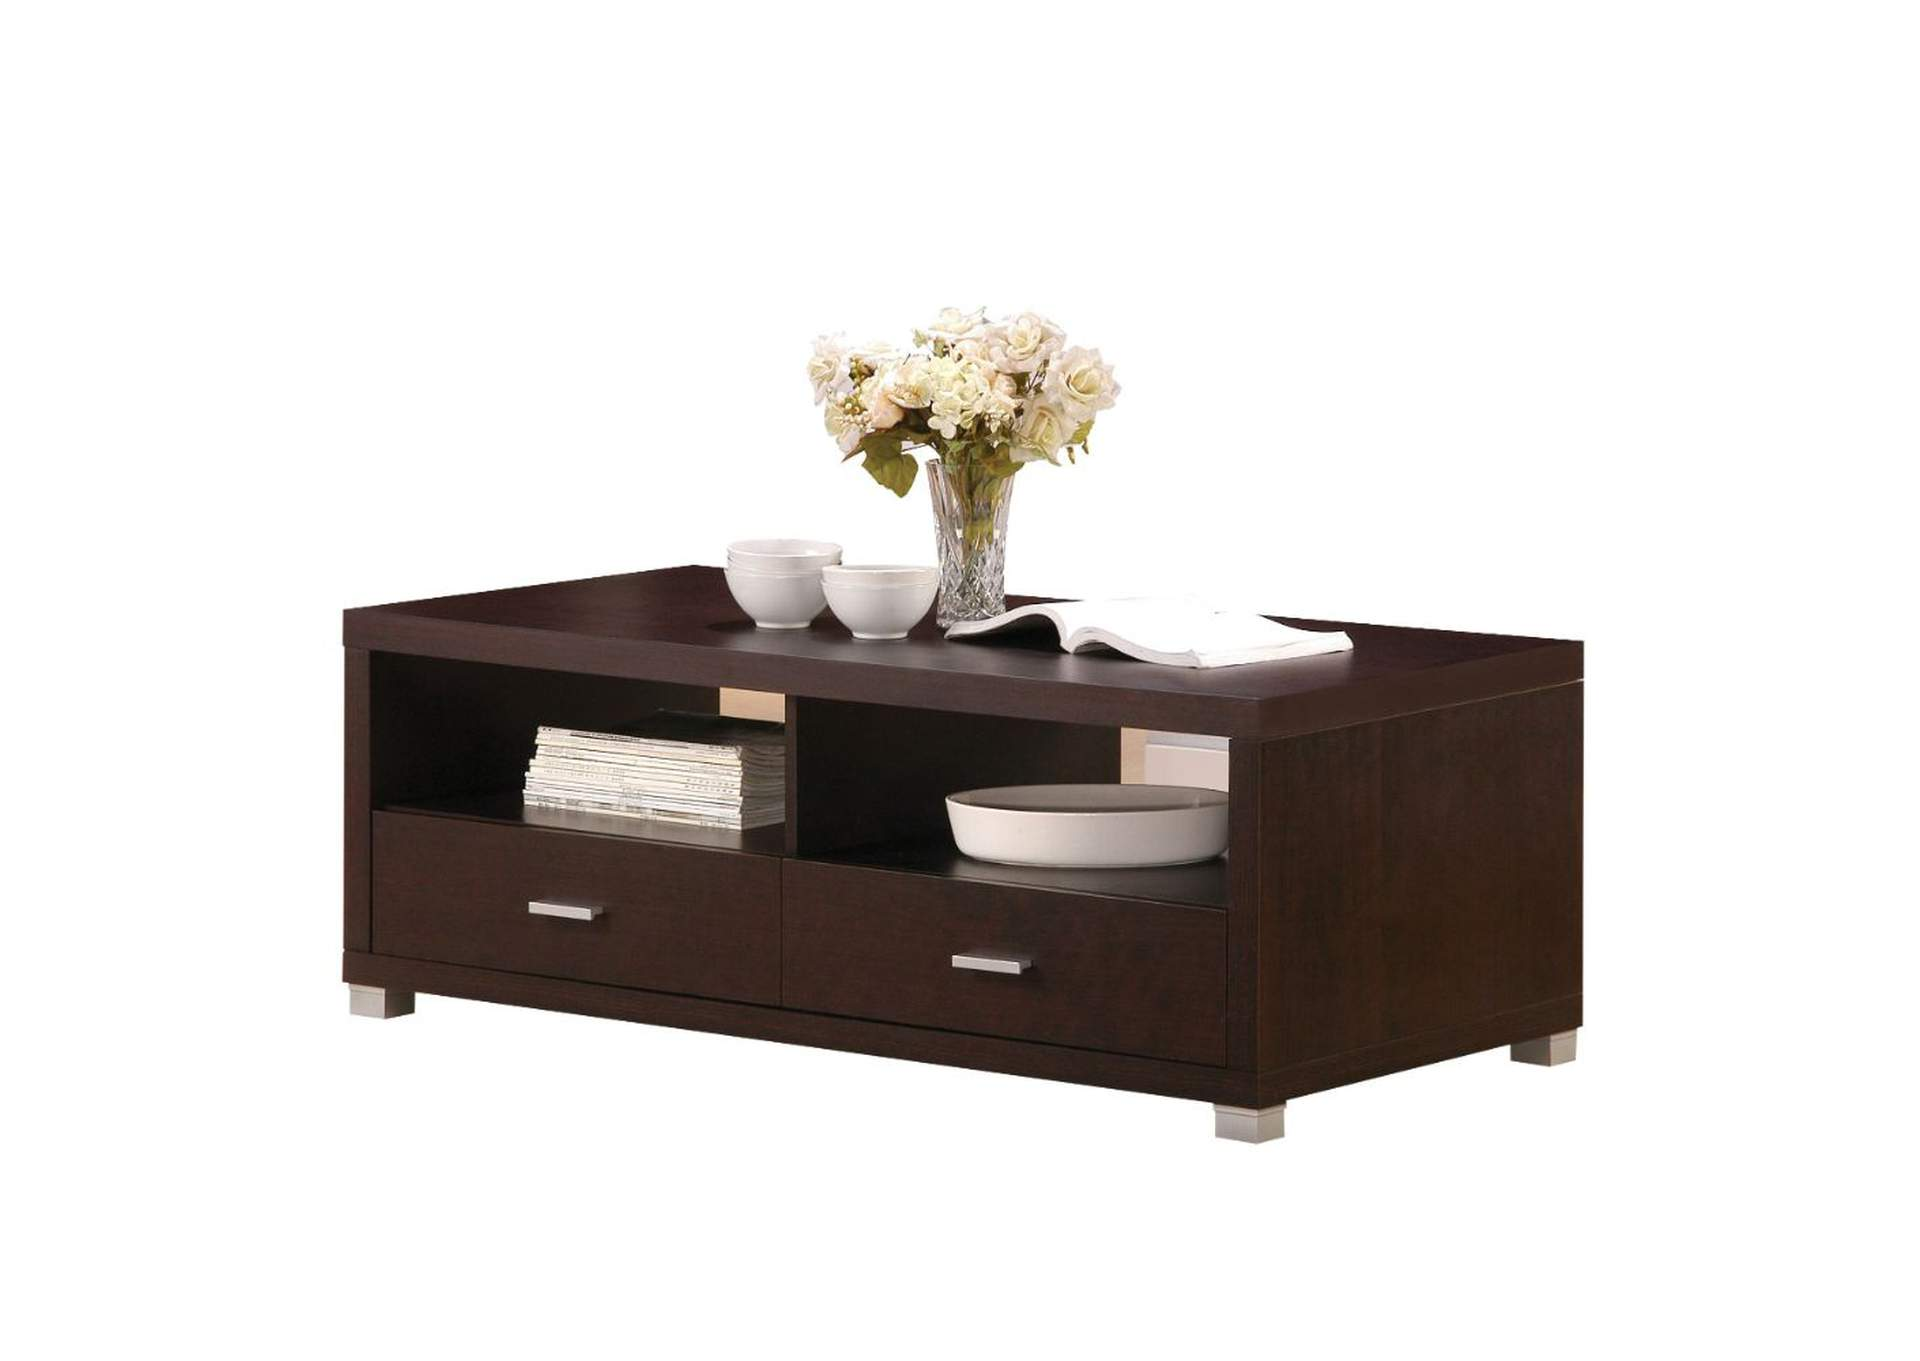 Expresso Coffee Table.Family Furniture Tx Redland Espresso Coffee Table